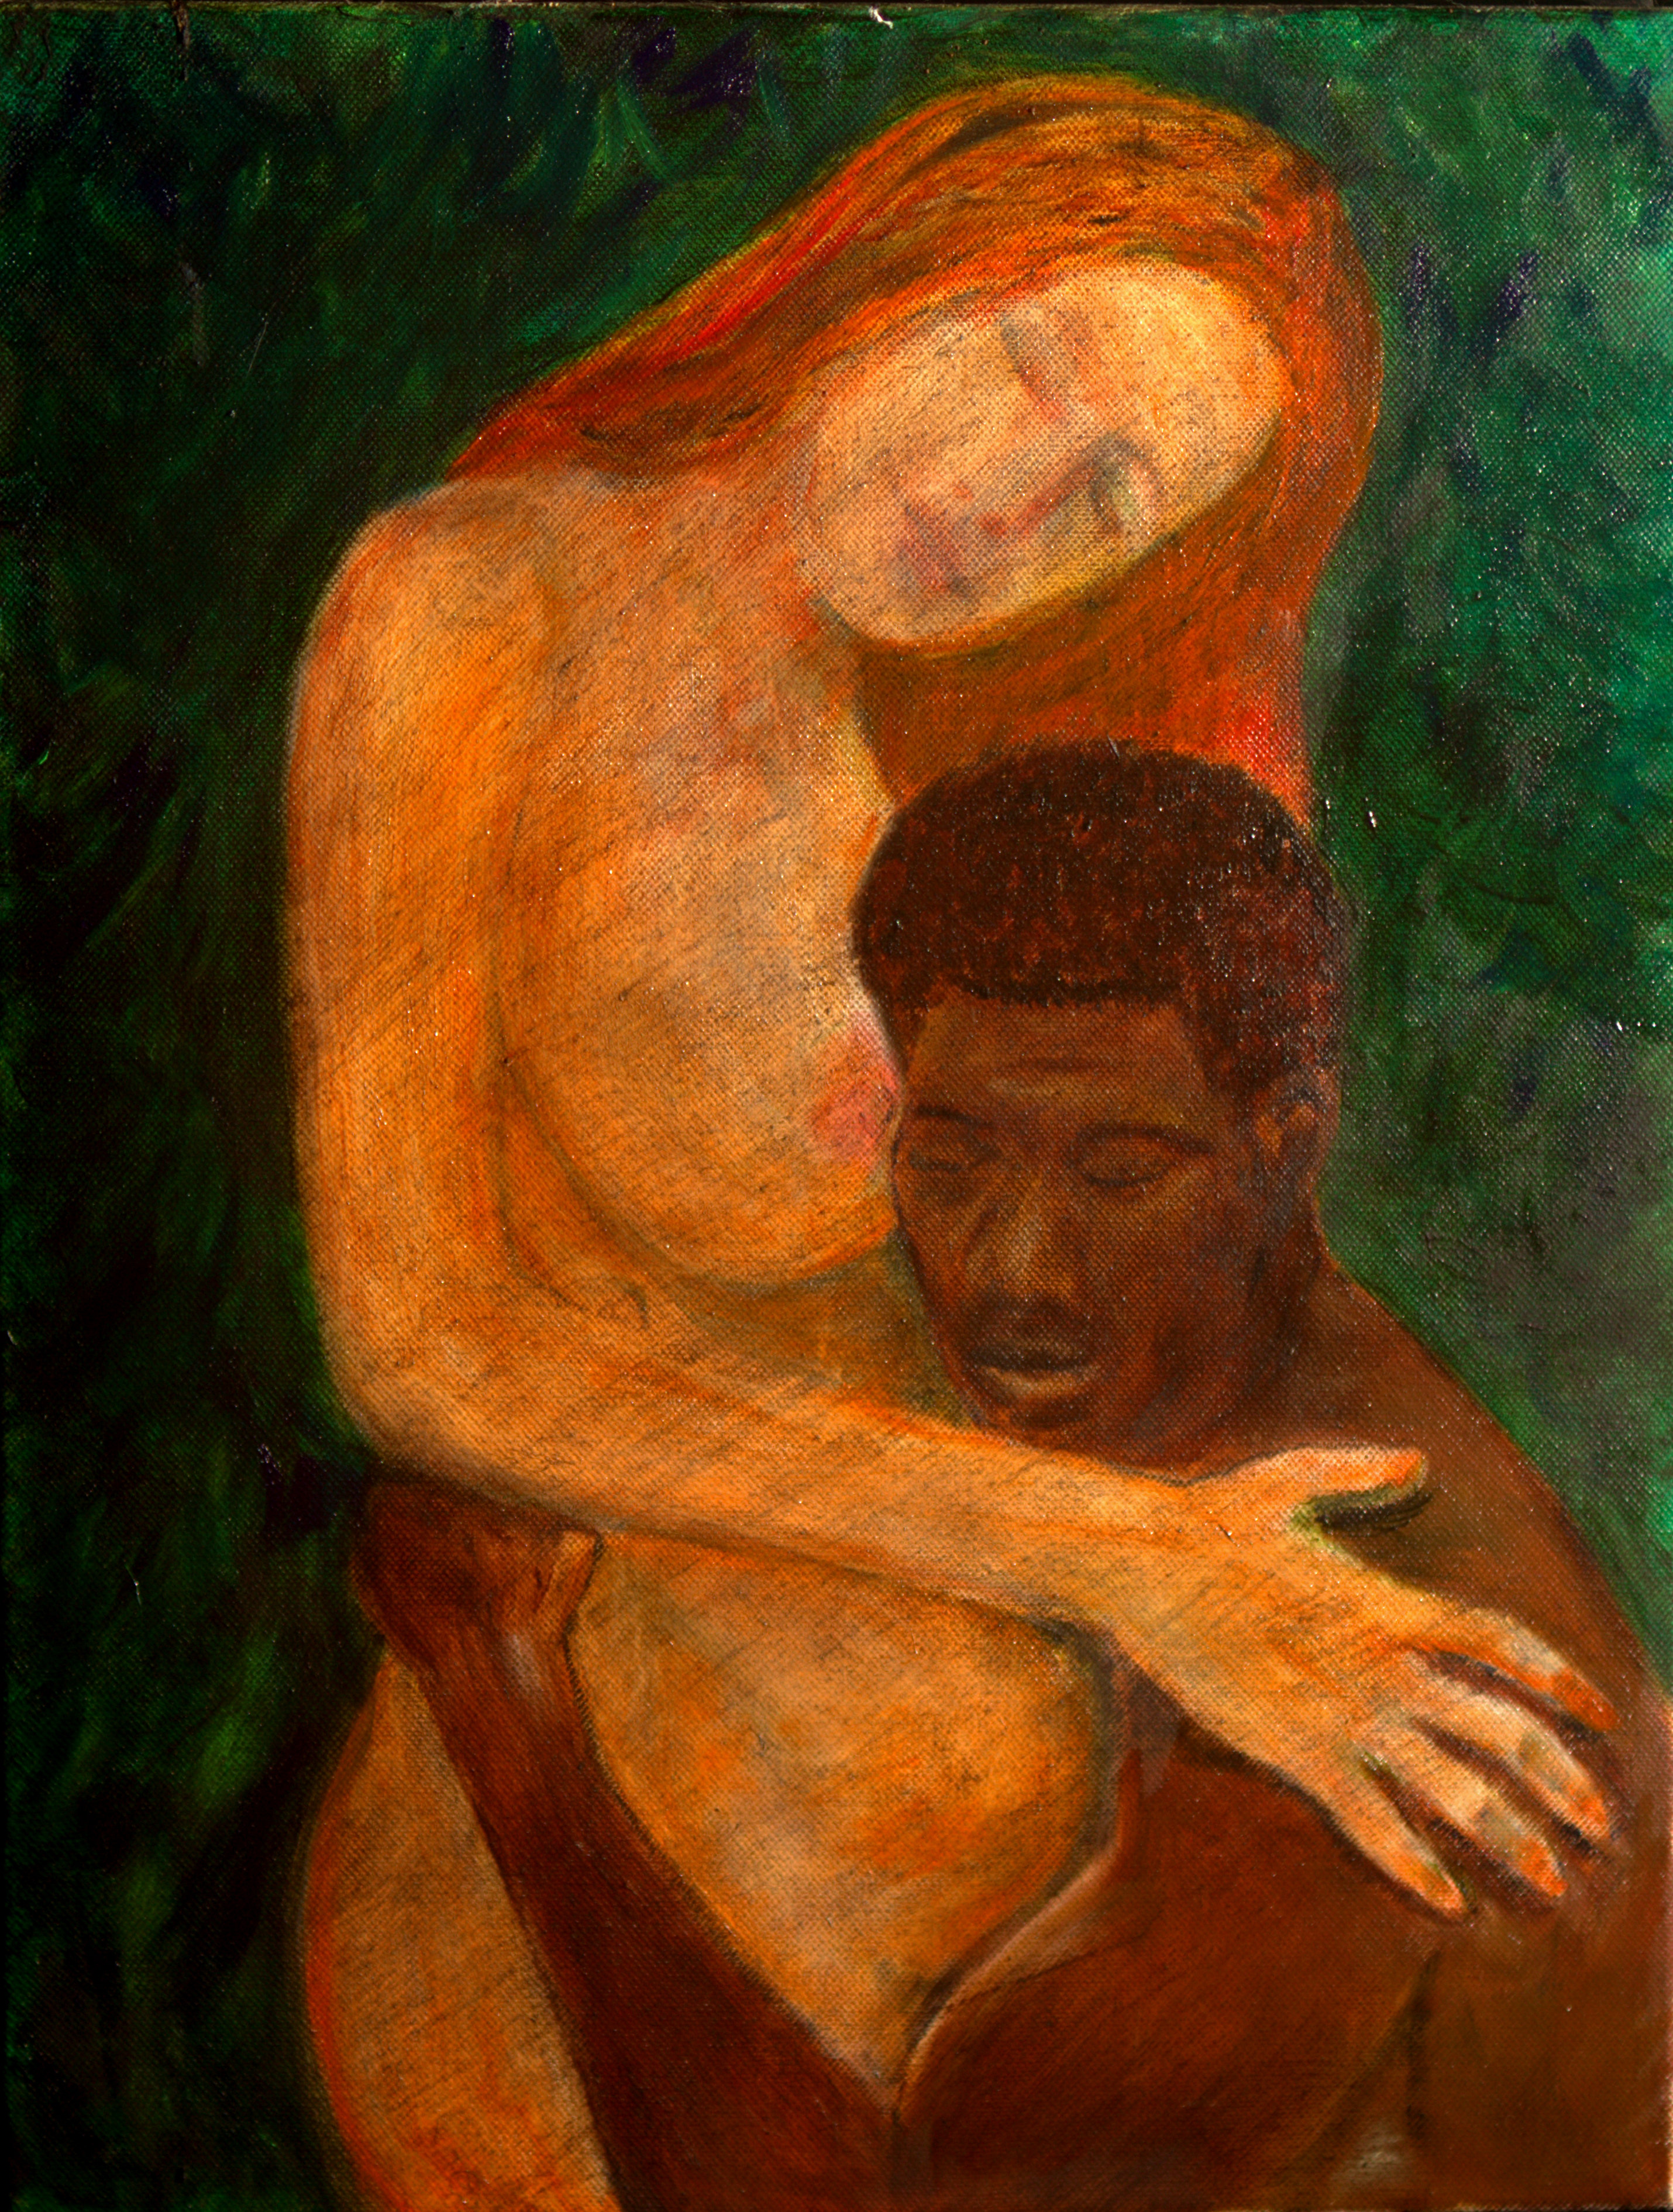 Reconciliation - heal the wounds and create a new and promising world.